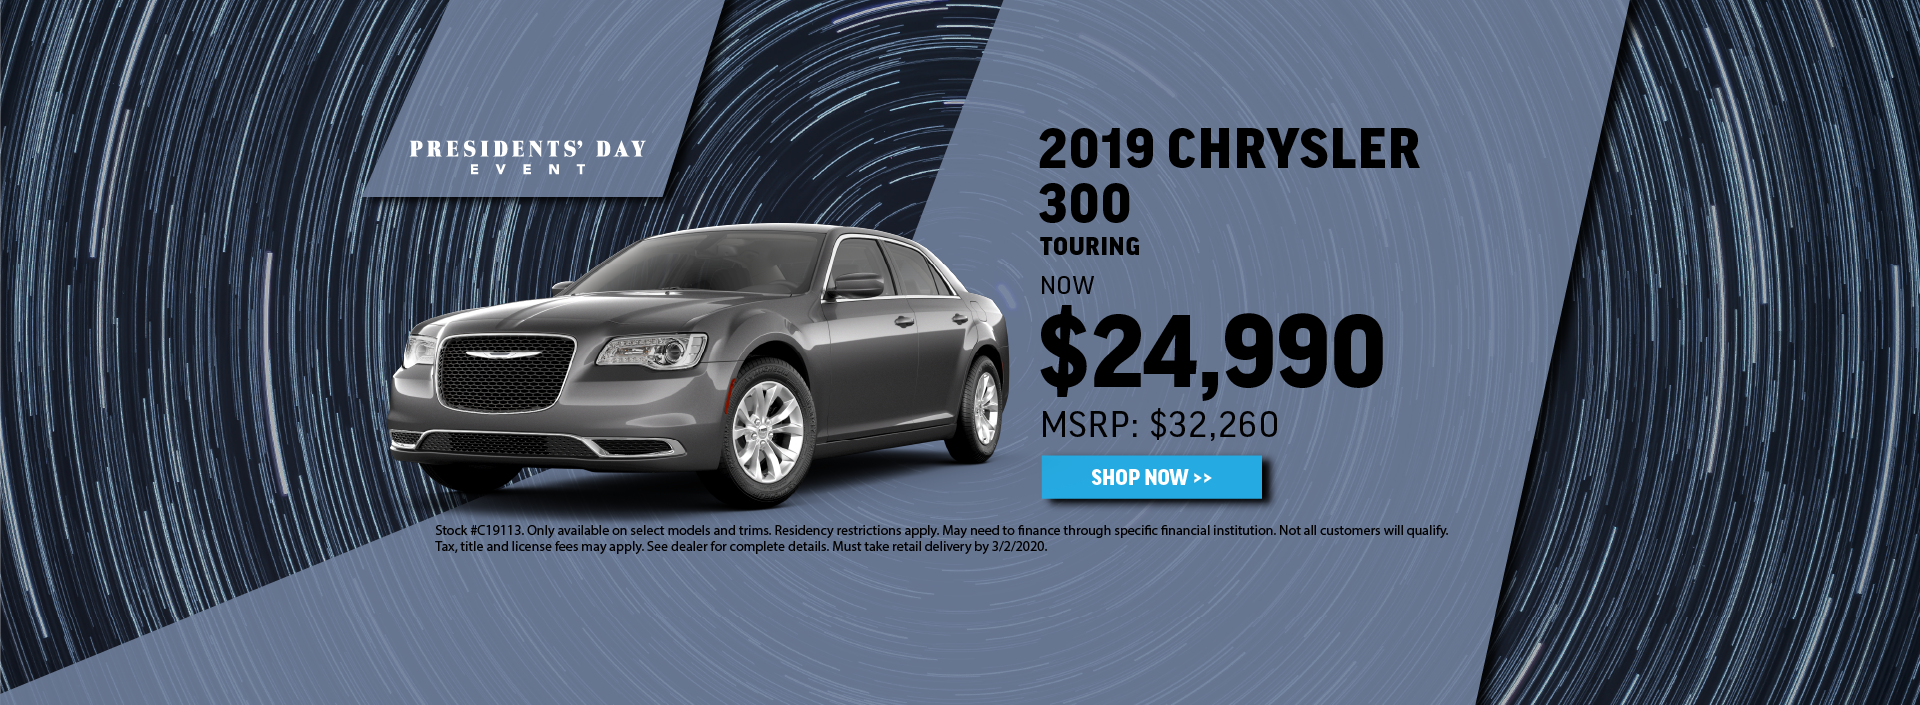 2019 Chrysler 300 Offer